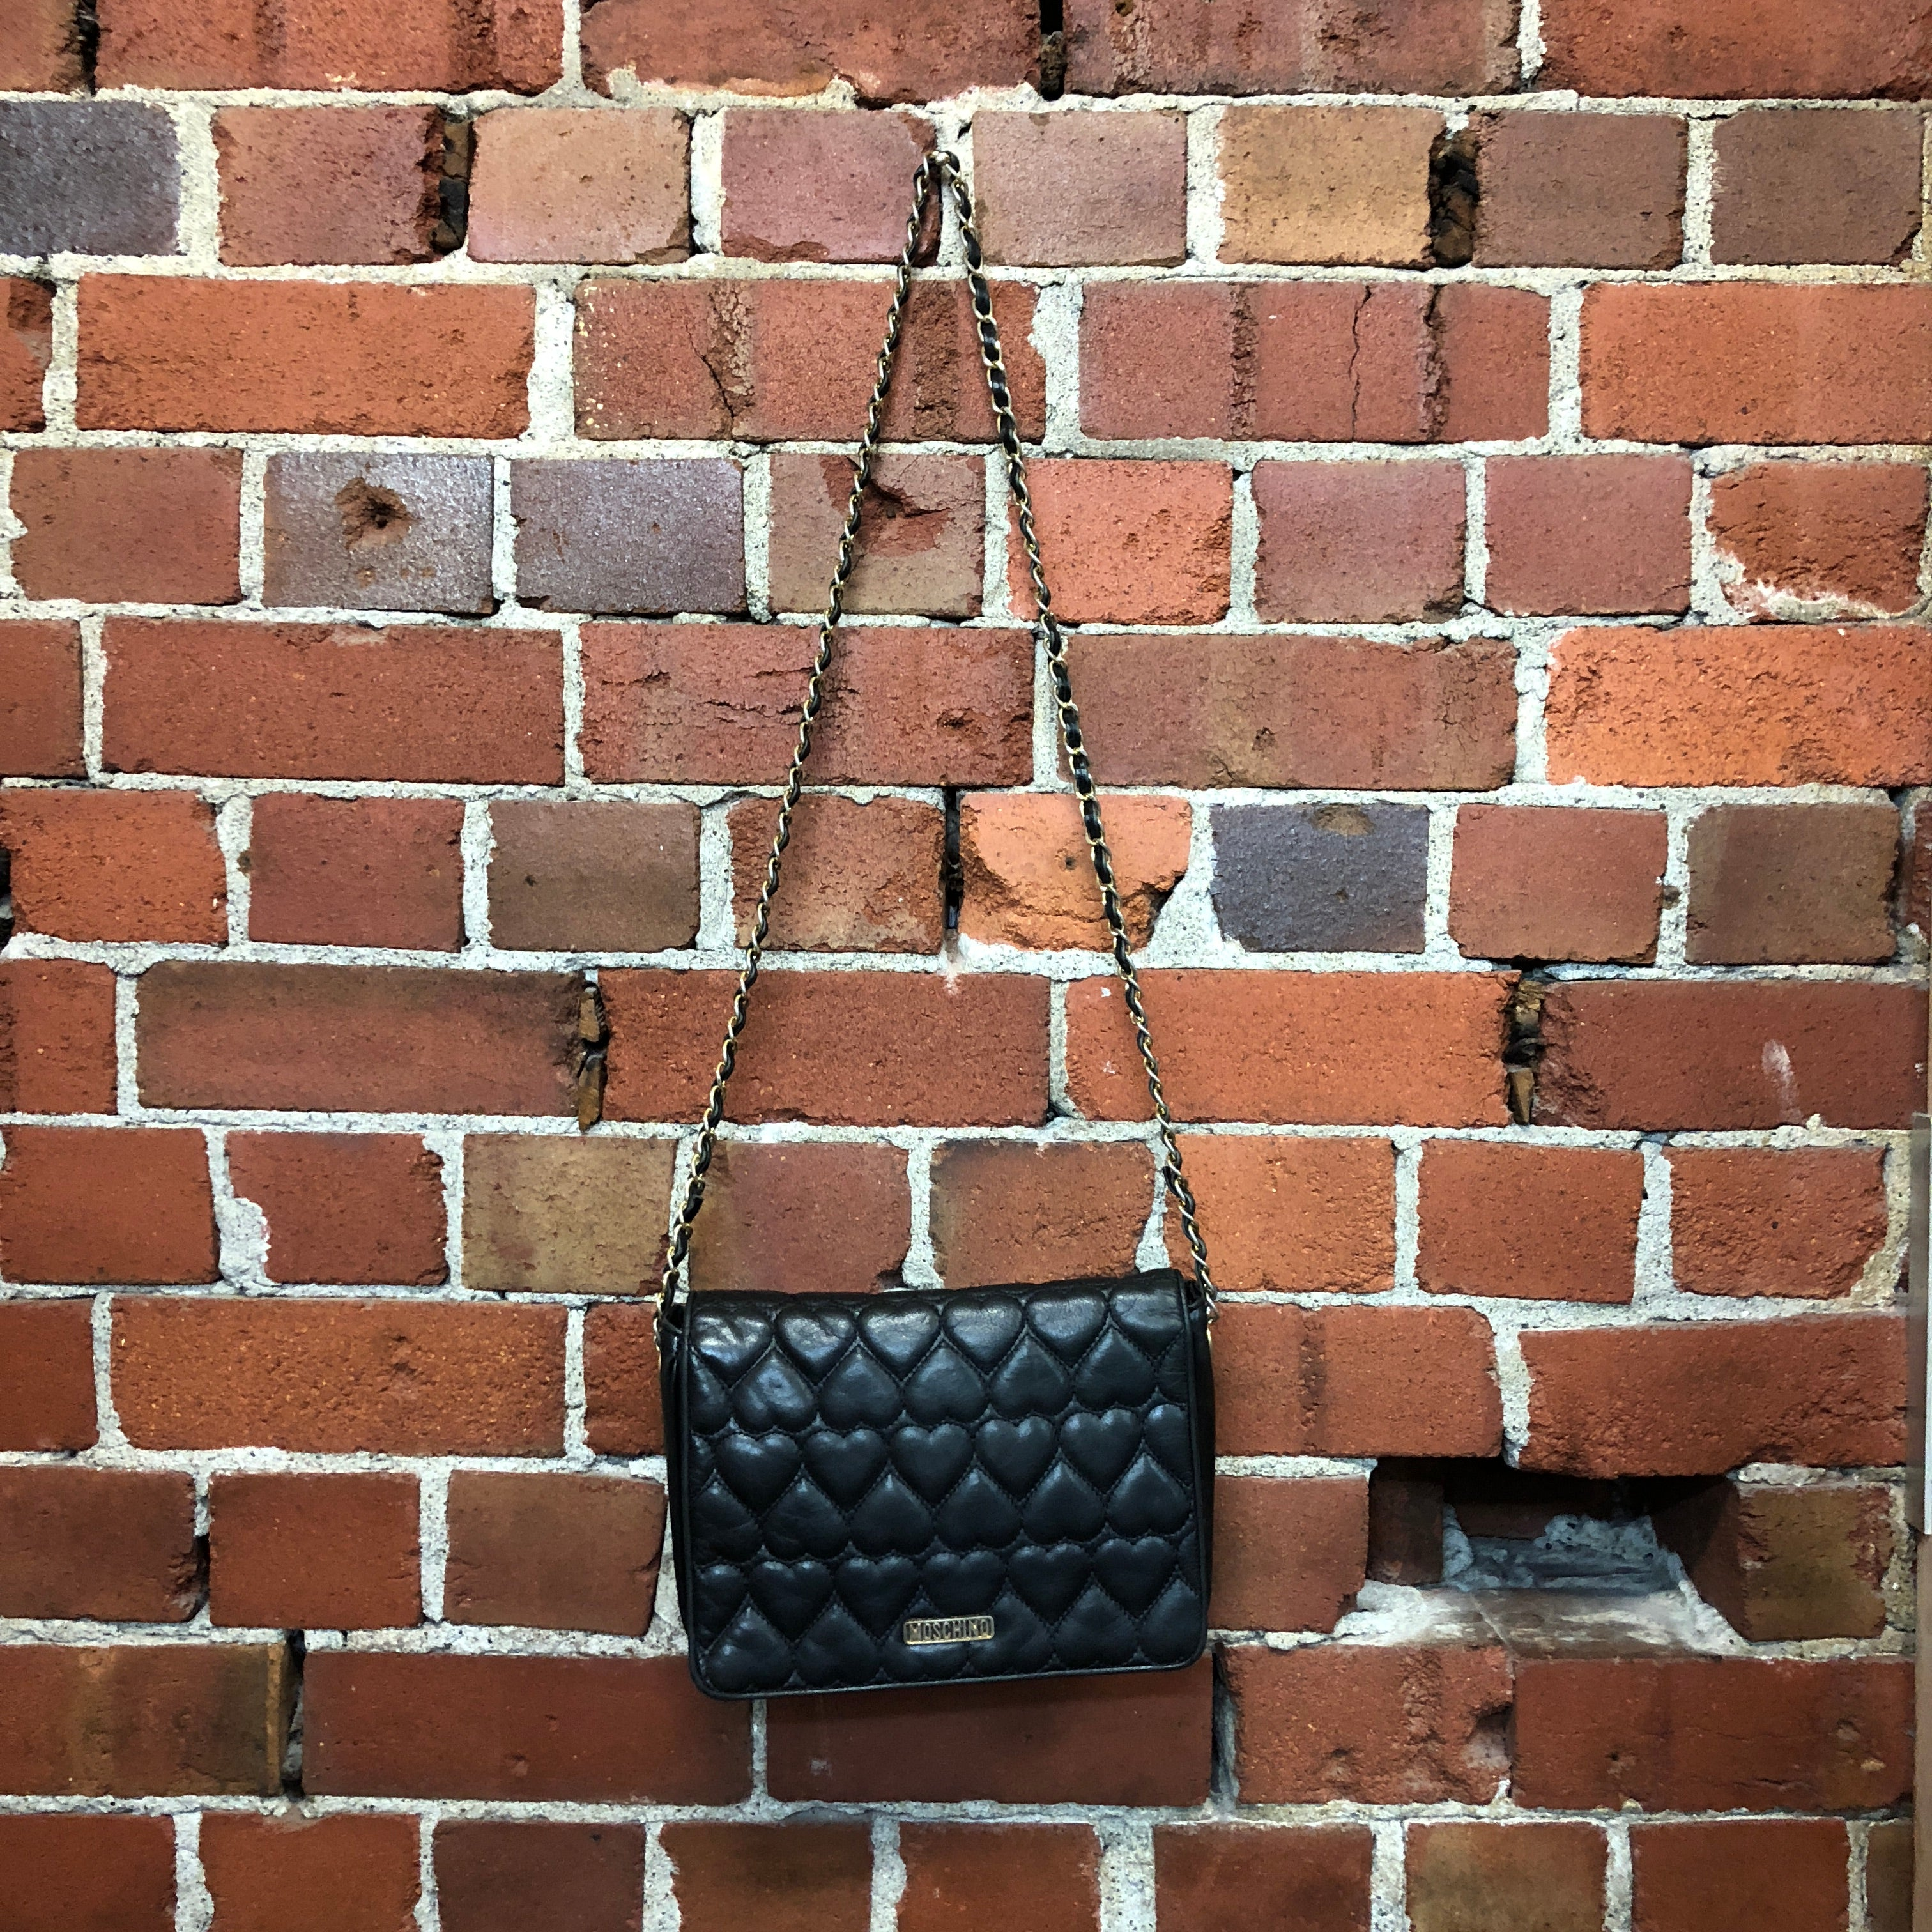 MOSCHINO quilted leather handbag